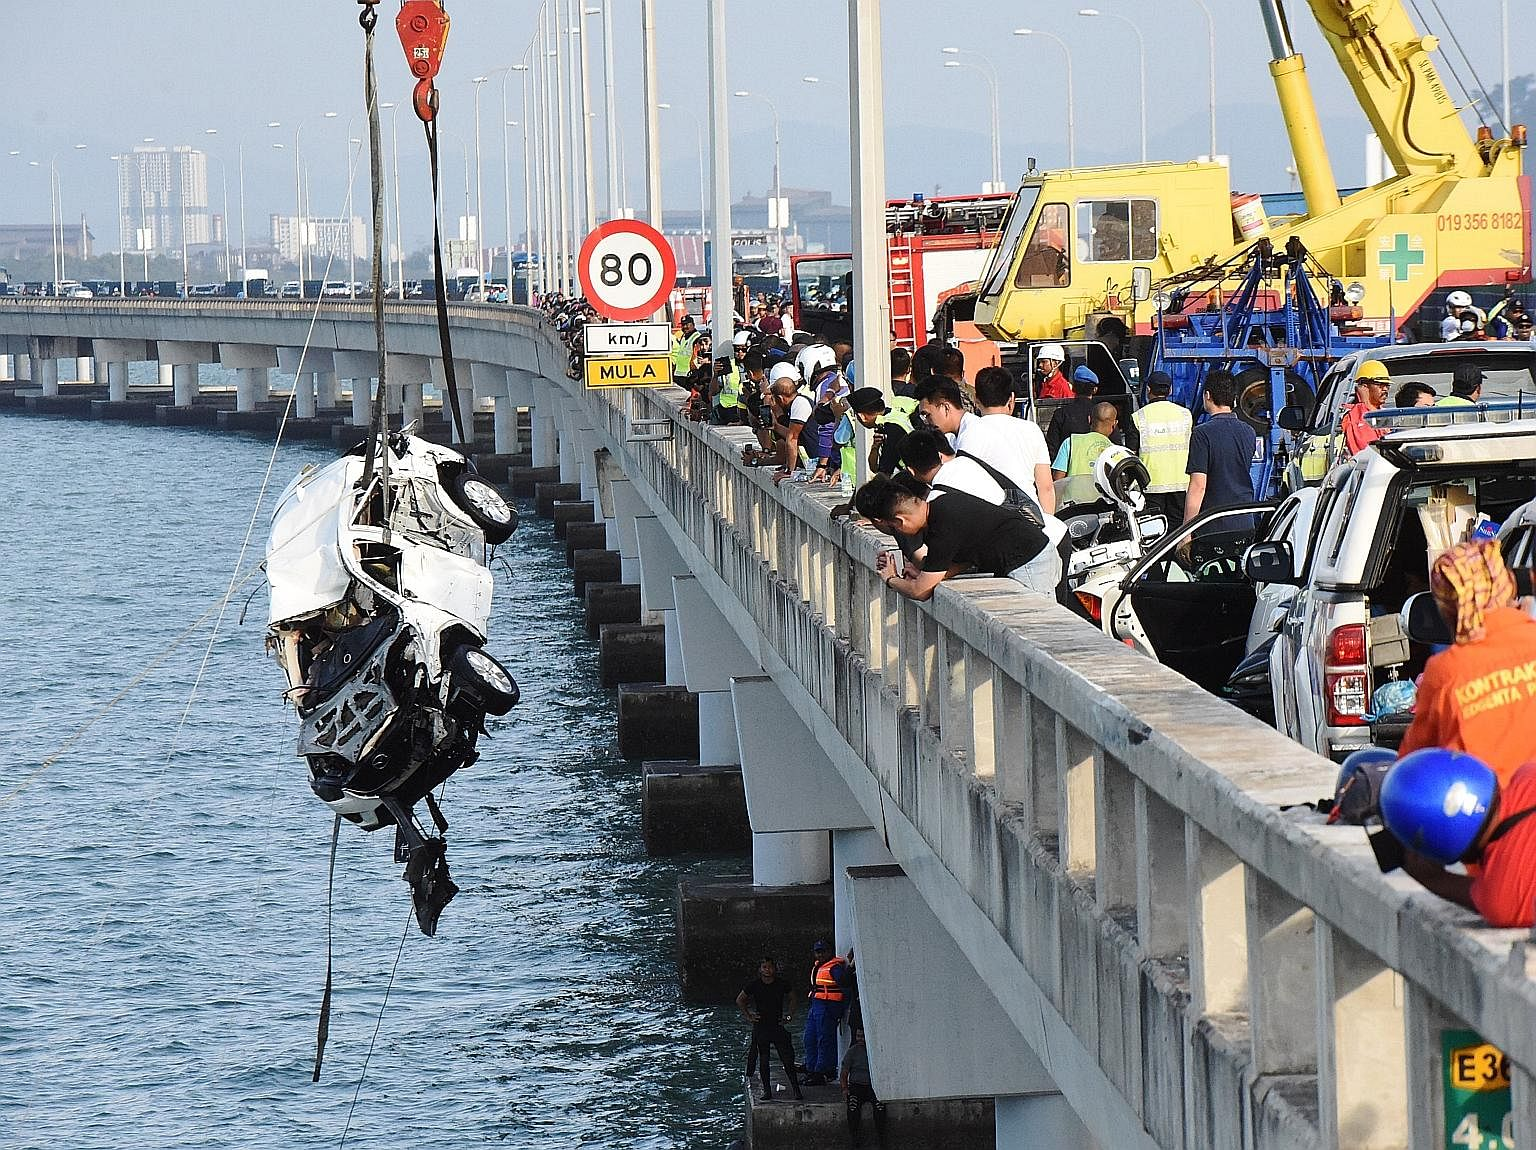 Malaysian rescuers yesterday retrieved the car that plunged into the sea on Sunday from the Penang Bridge, with the driver's body inside. The wrecked sport utility vehicle was hoisted out by a crane in a 20-minute operation. It had plunged into the s